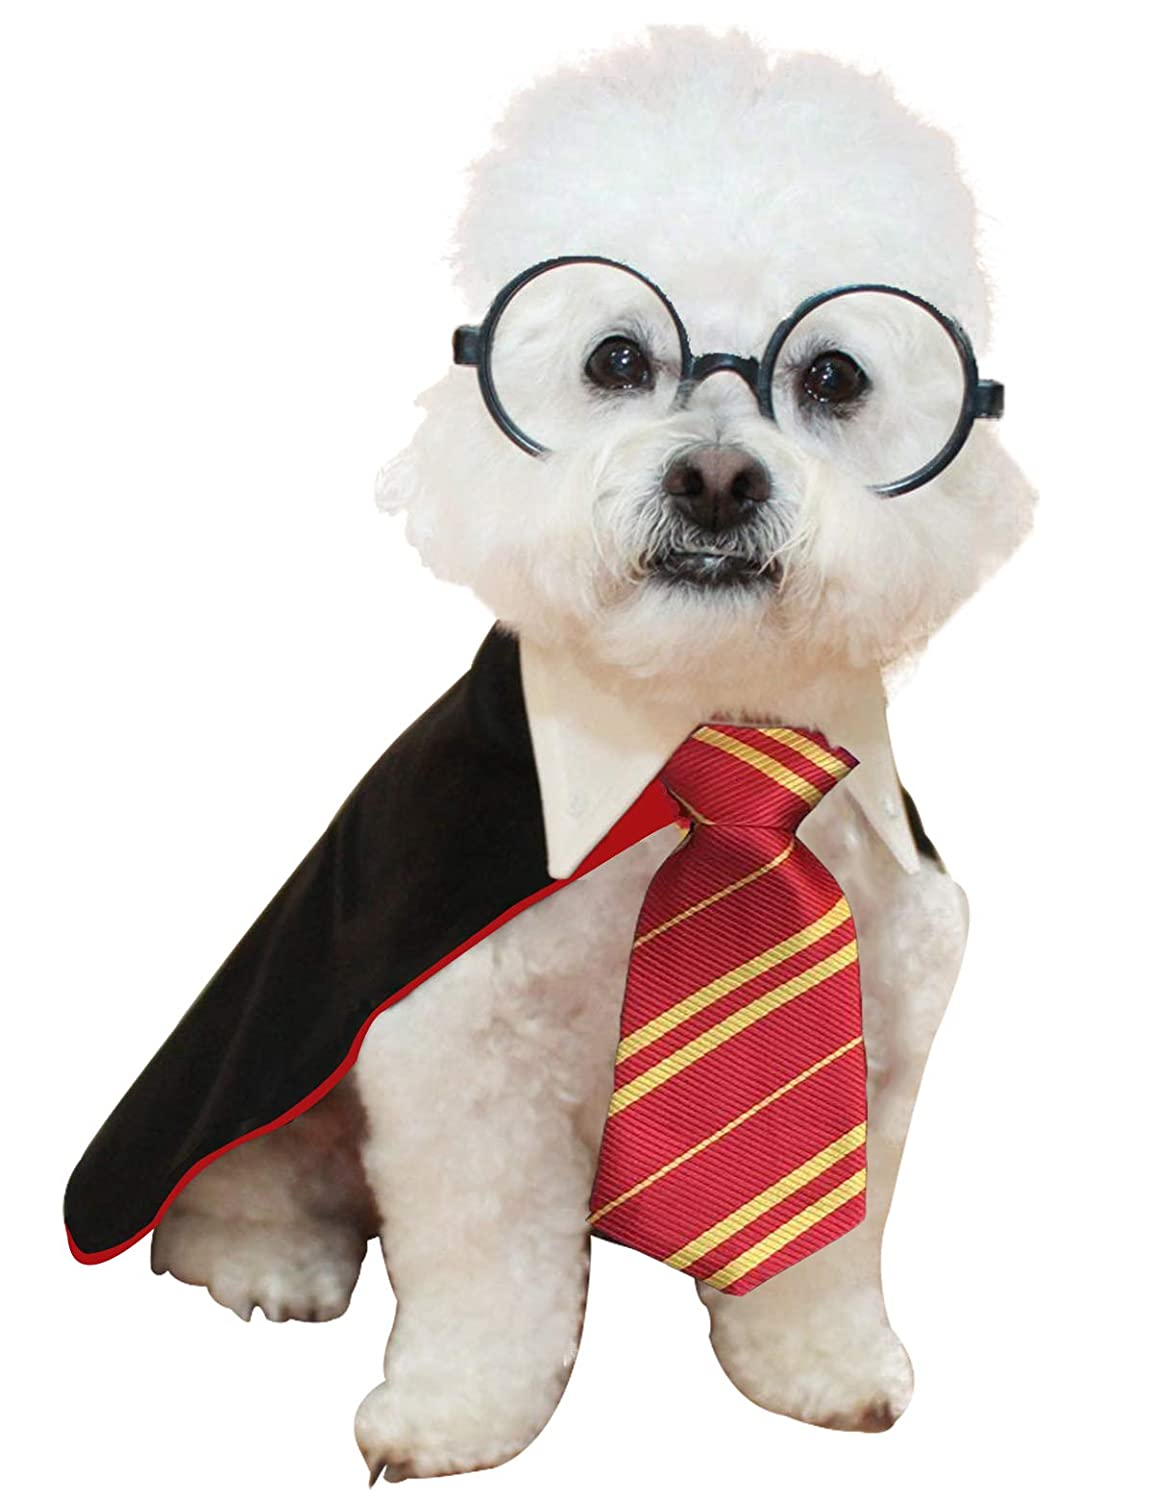 Impoosy Halloween Pet Dog Shirt Puppy Cat Wizard Costume Cute Clothes for Small to Large Dogs Cats Outfits with Glasses